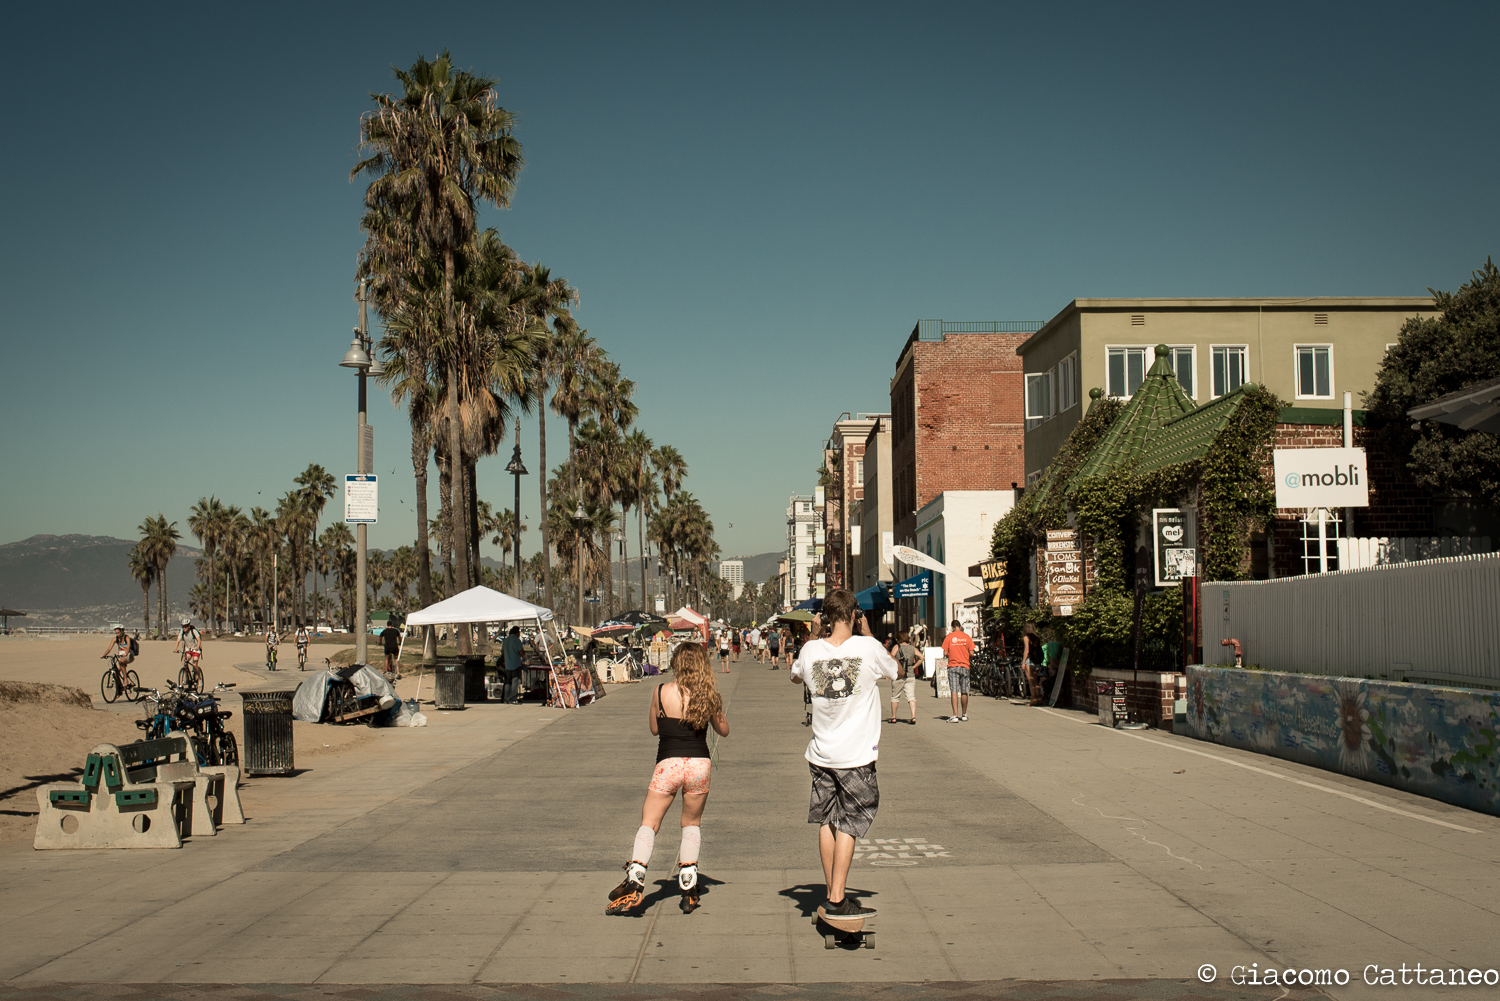 Venice Beach - ISO 200, 35mm, f/8, 1/1250 sec